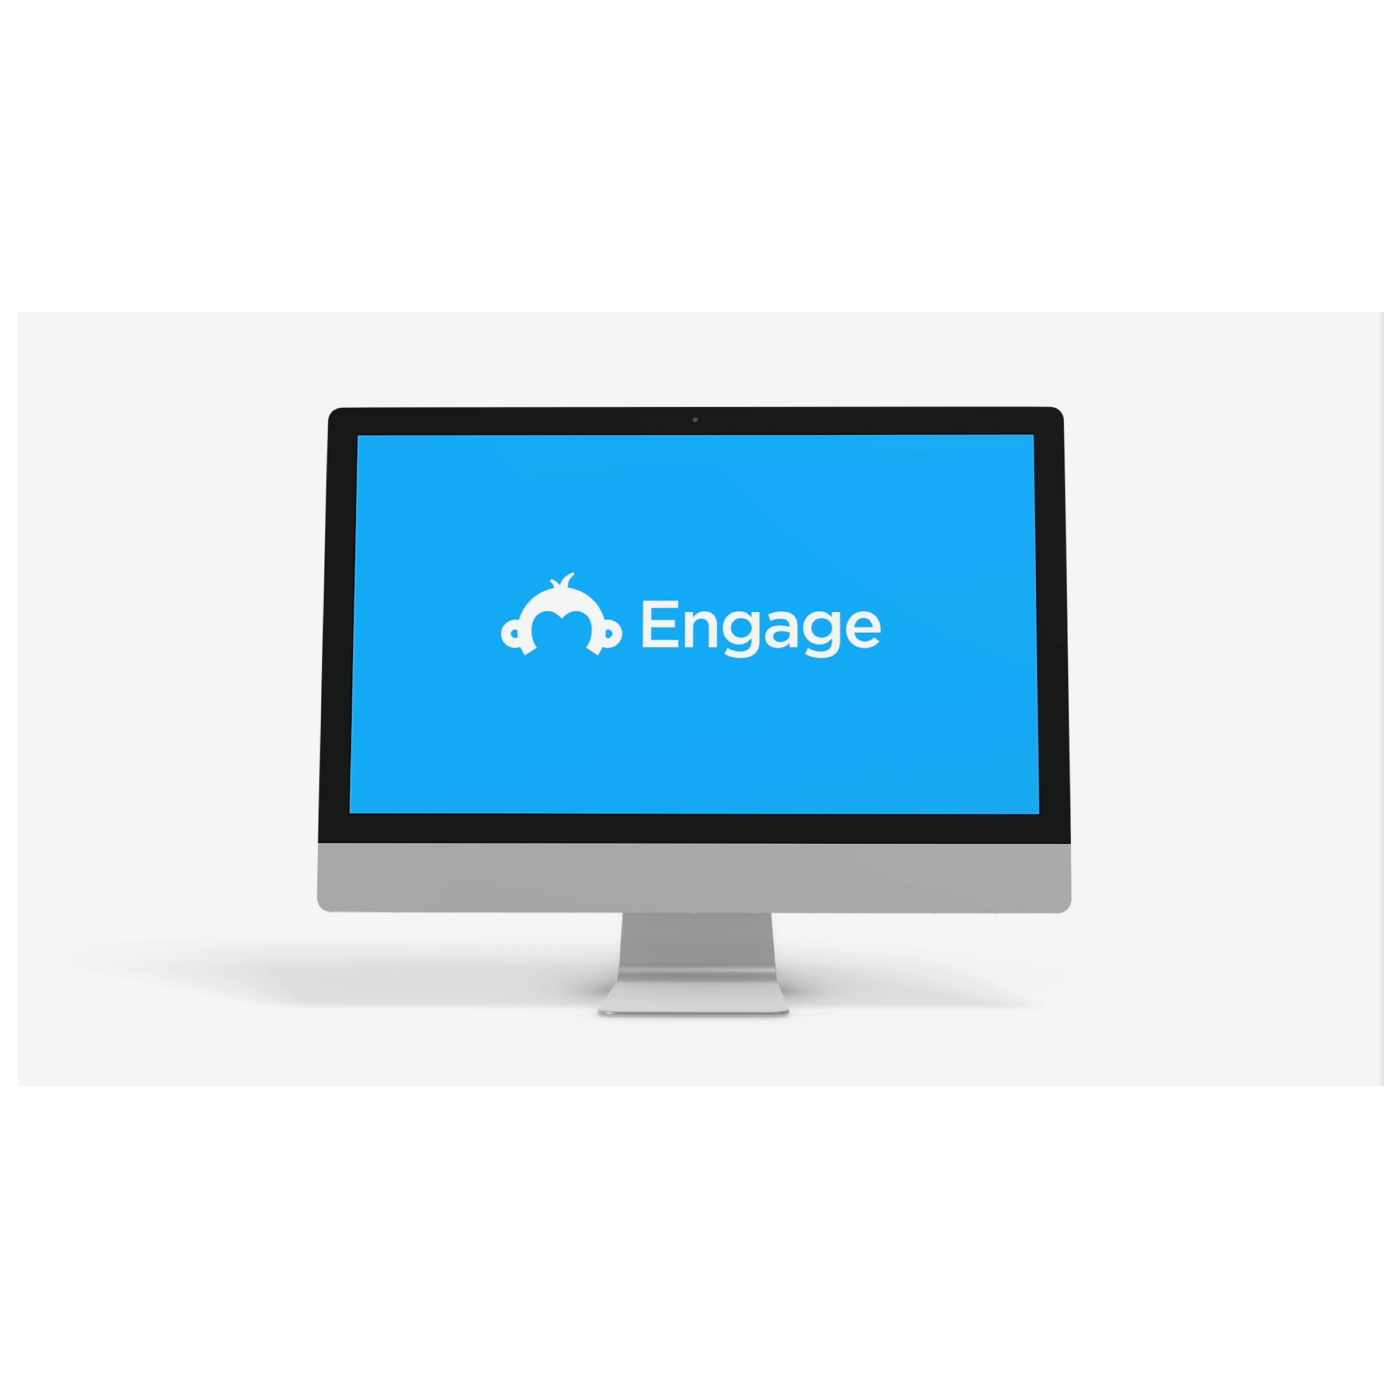 Computer with Engage logo